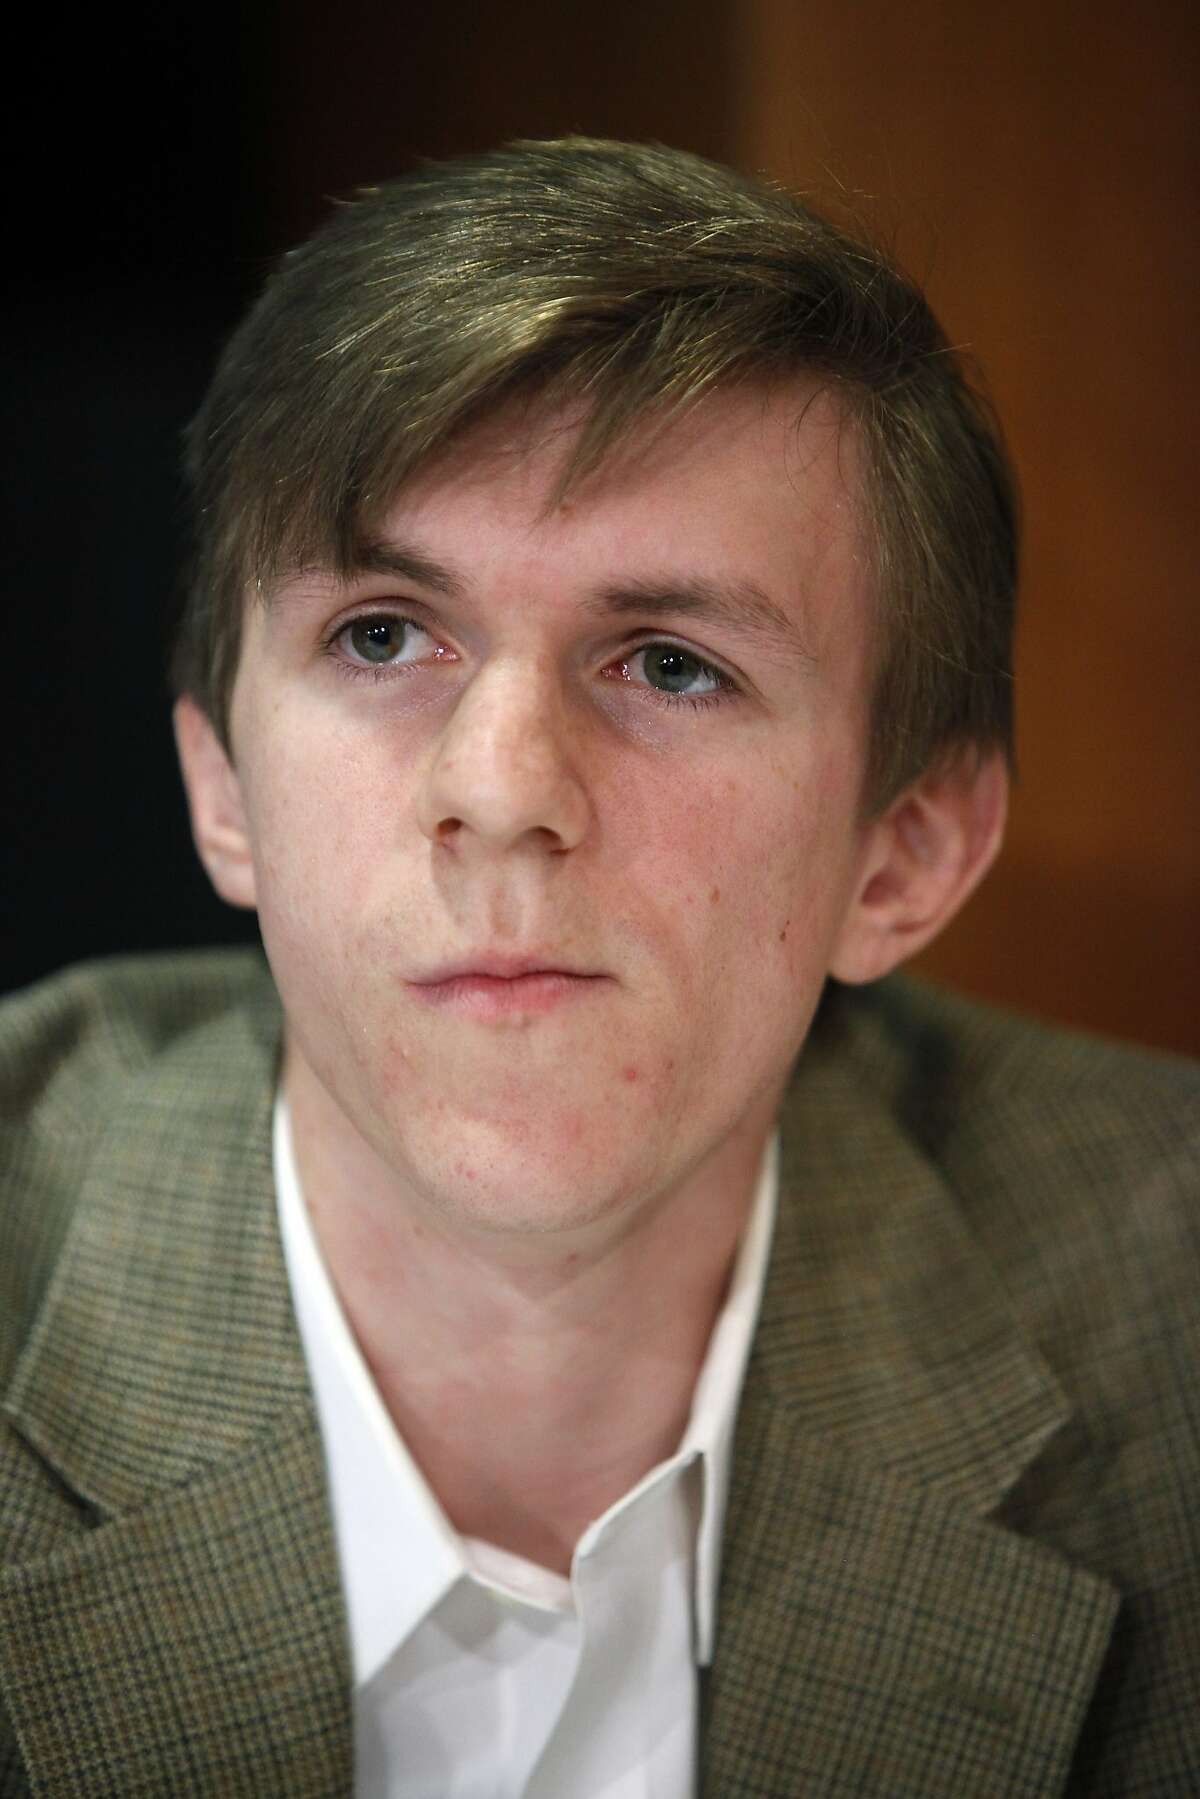 FILE - In a Wednesday, Oct. 21, 2009, file photo, James O'Keefe attends a news conference at the National Press Club in Washington. A National Public Radio executive blasts the tea party movement as